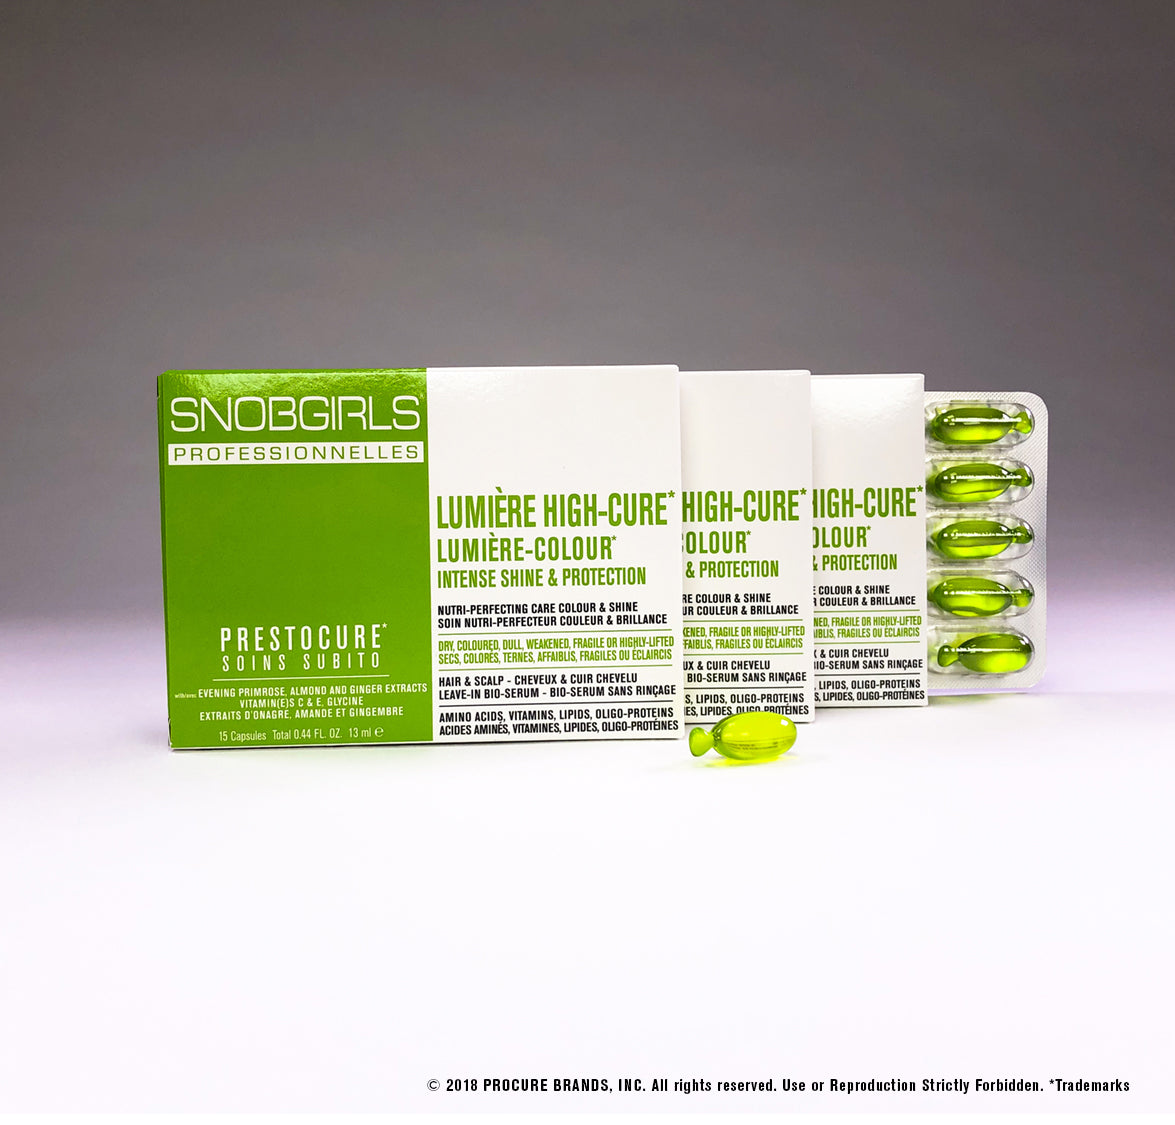 LUMIERE HIGH-CURE New 3 Packs Gluten Free Hair Serum - 45 Capsules - SNOBGIRLS.com